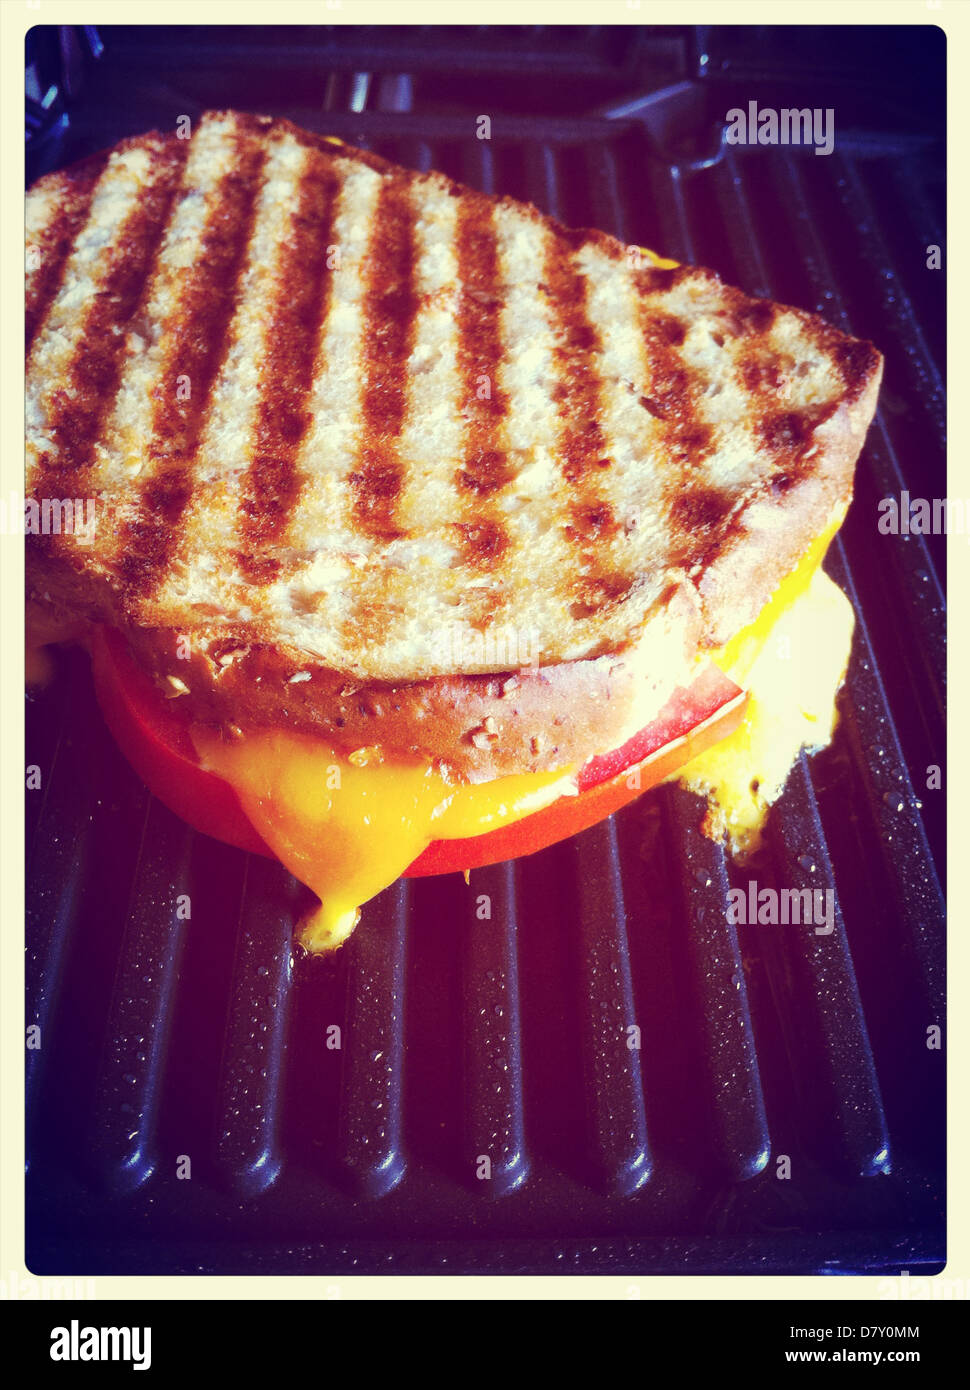 Sandwich Maker High Resolution Stock Photography And Images Alamy